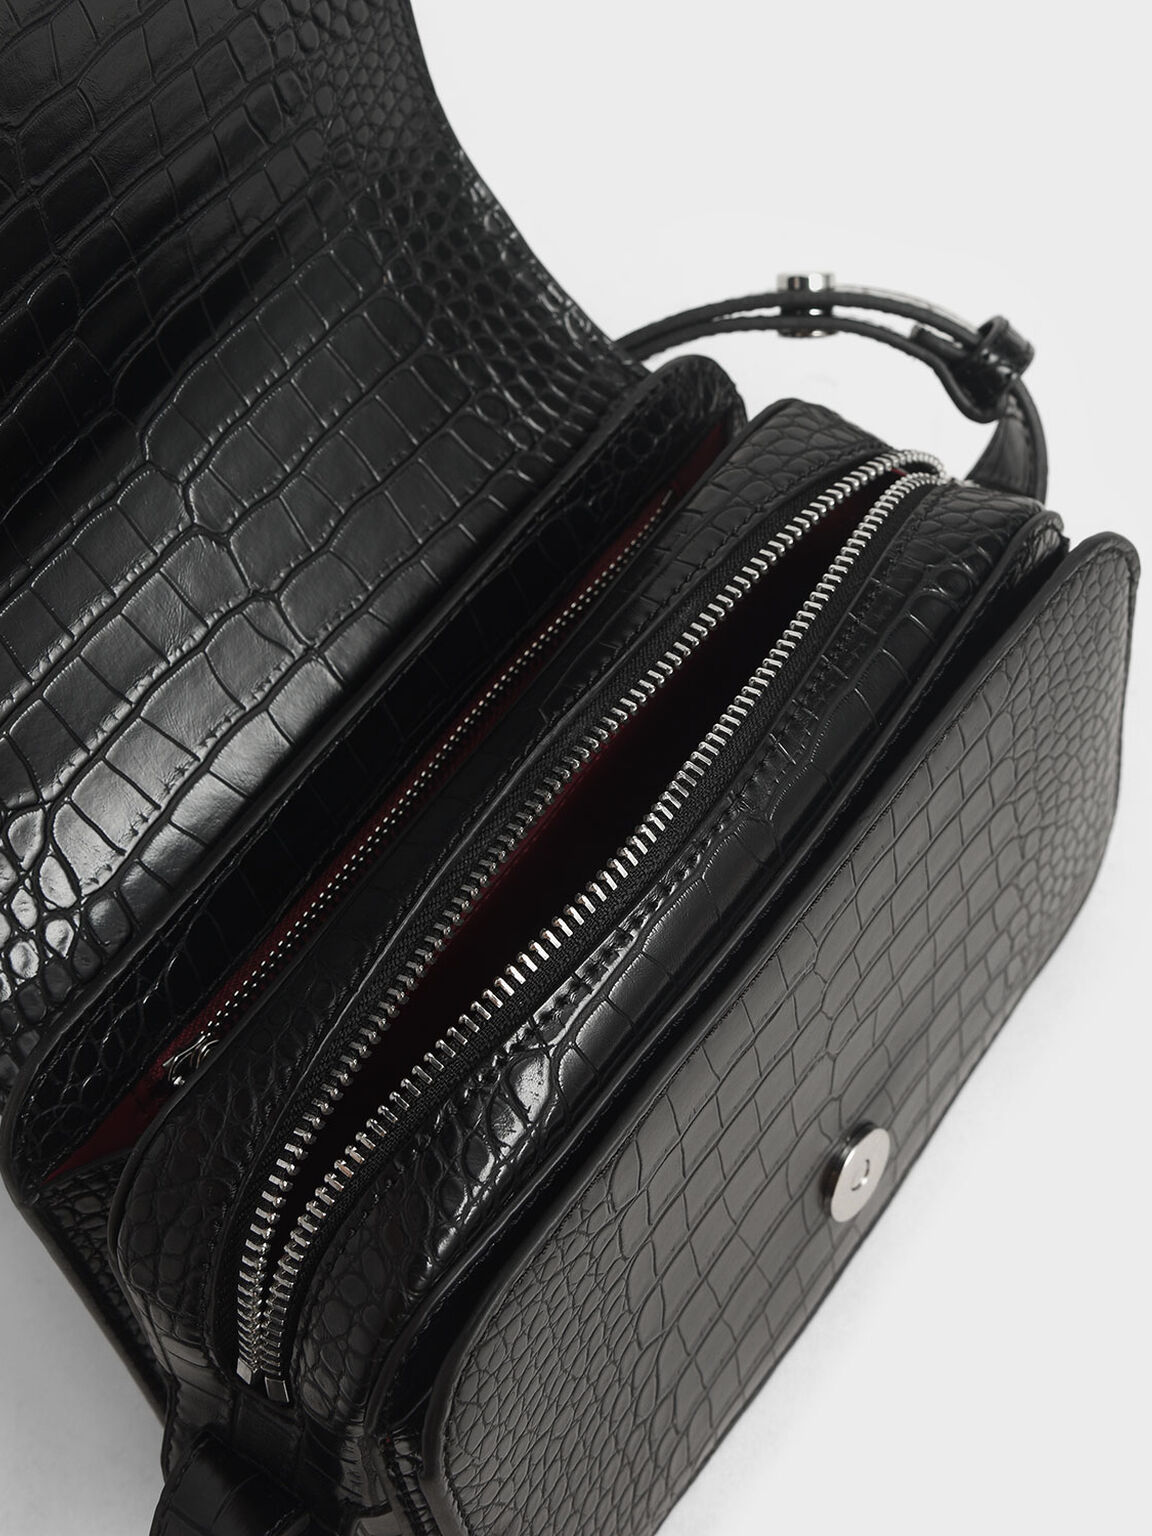 Buckle Strap Croc-Effect Shoulder Bag, Black, hi-res